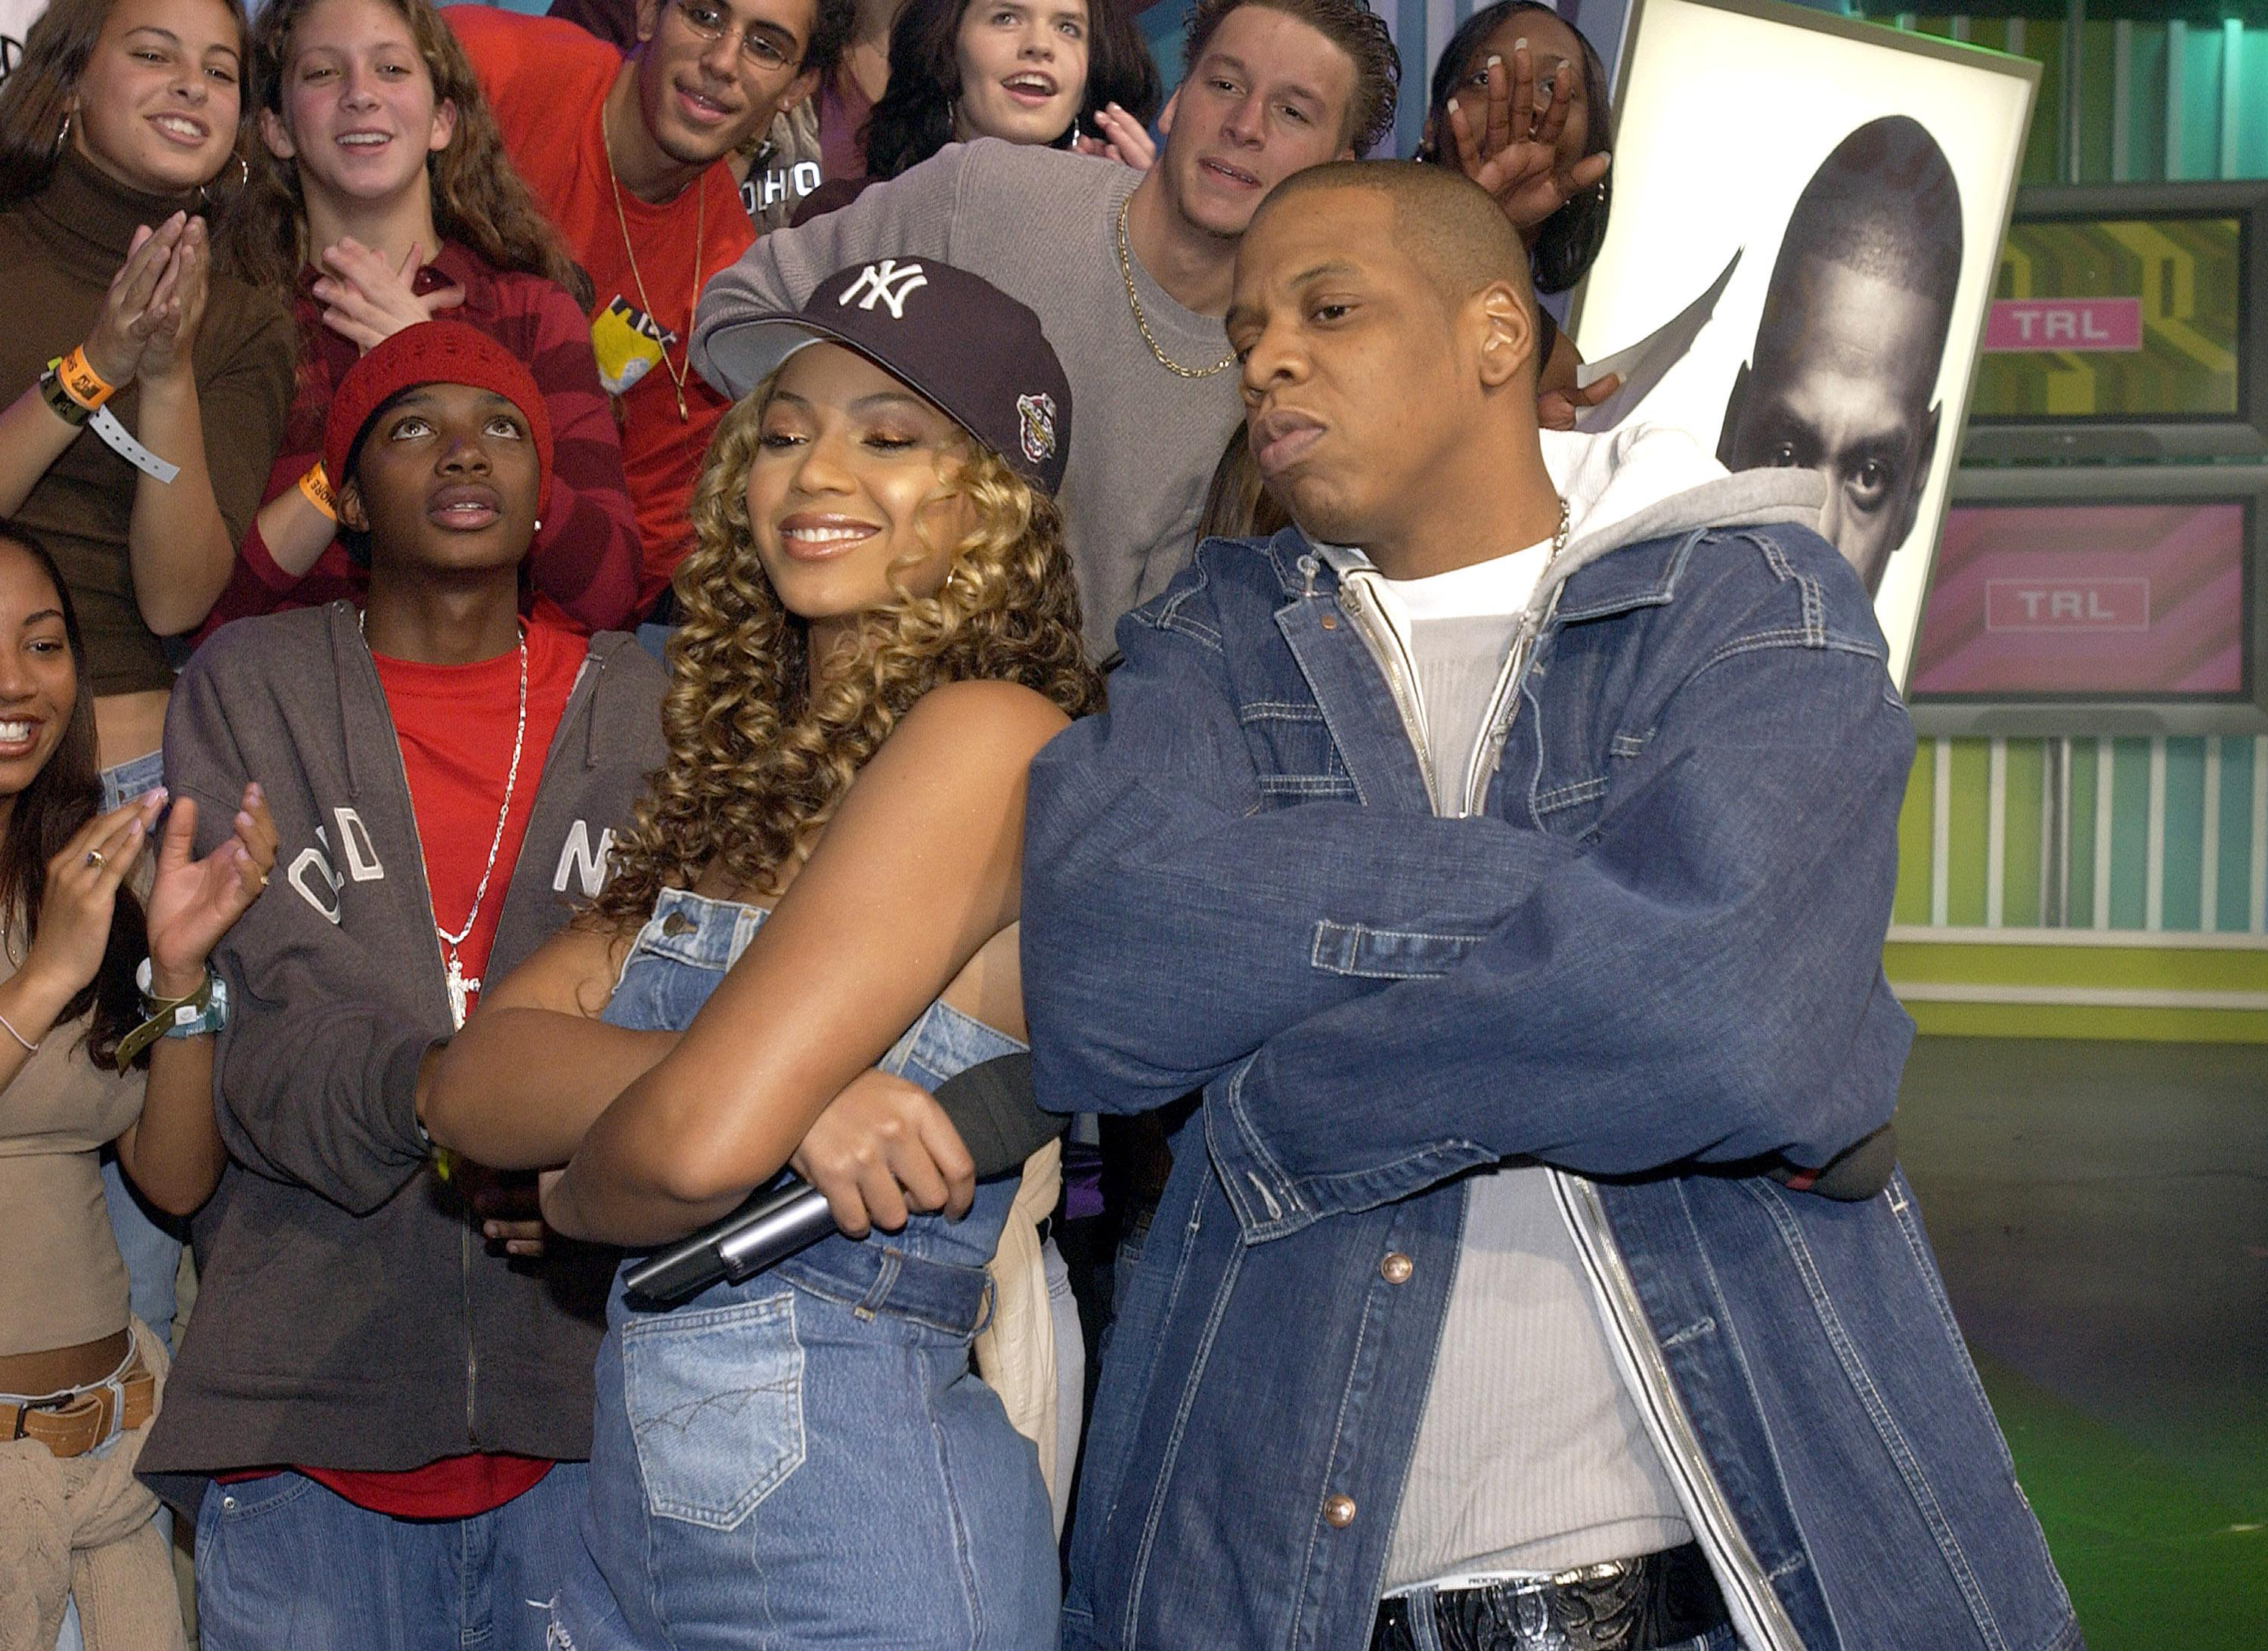 'Spankin' New Music Week' with Jay-Z, Beyonce Knowles and Solange Knowles on MTV's 'TRL' - November 21, 2002